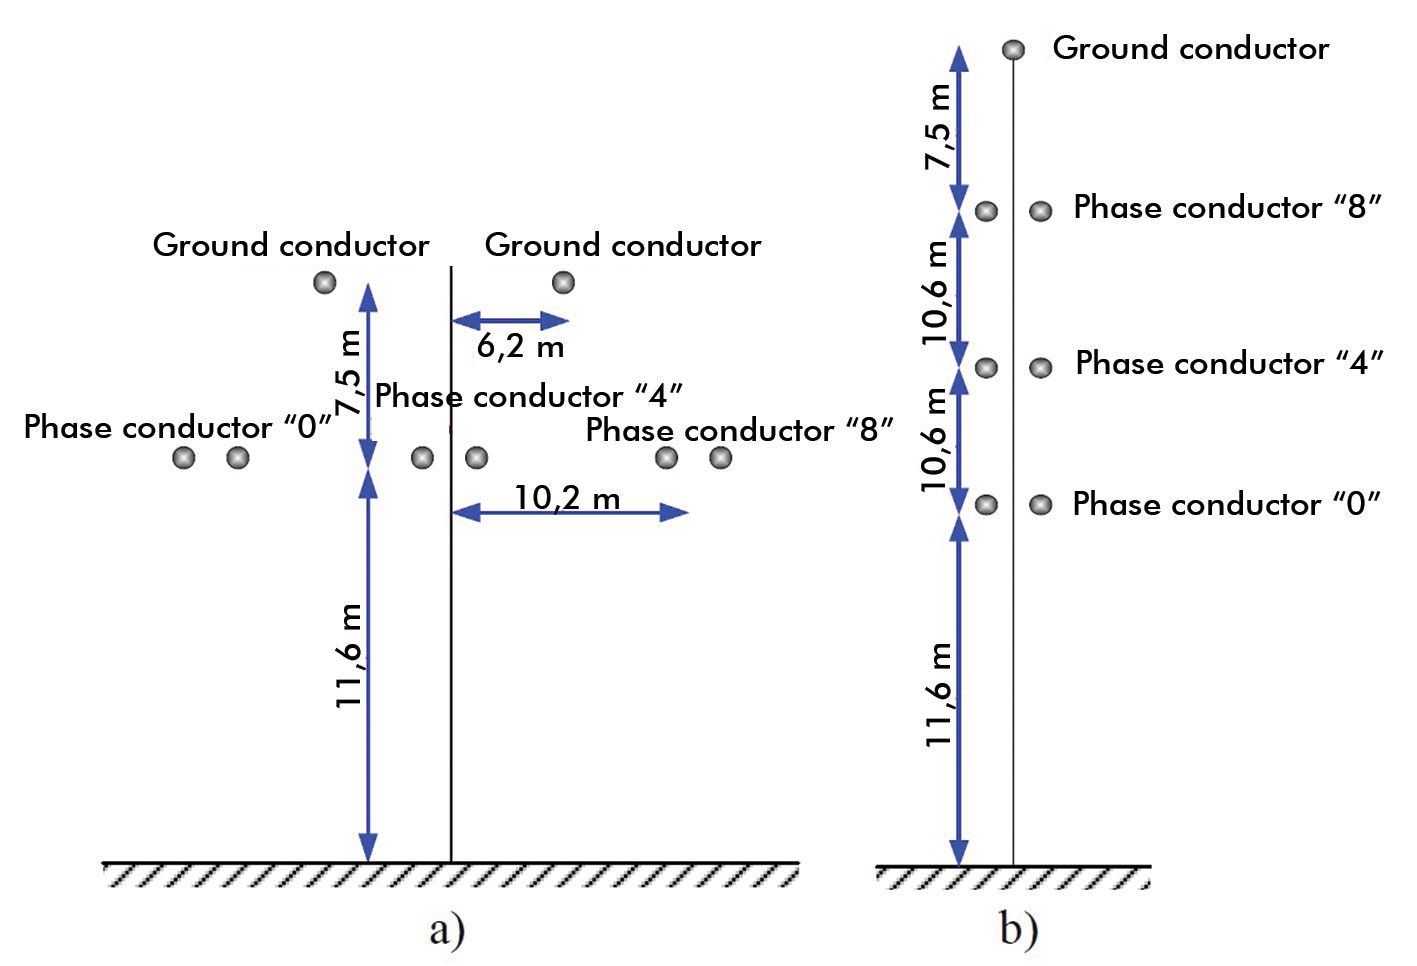 The Mitigation Of Electric And Magnetic Fields From Transmission Lines Neutral Earthing Phase Conductors For Power Circuits Fig 6a Horizontal Configuration 6b Vertical